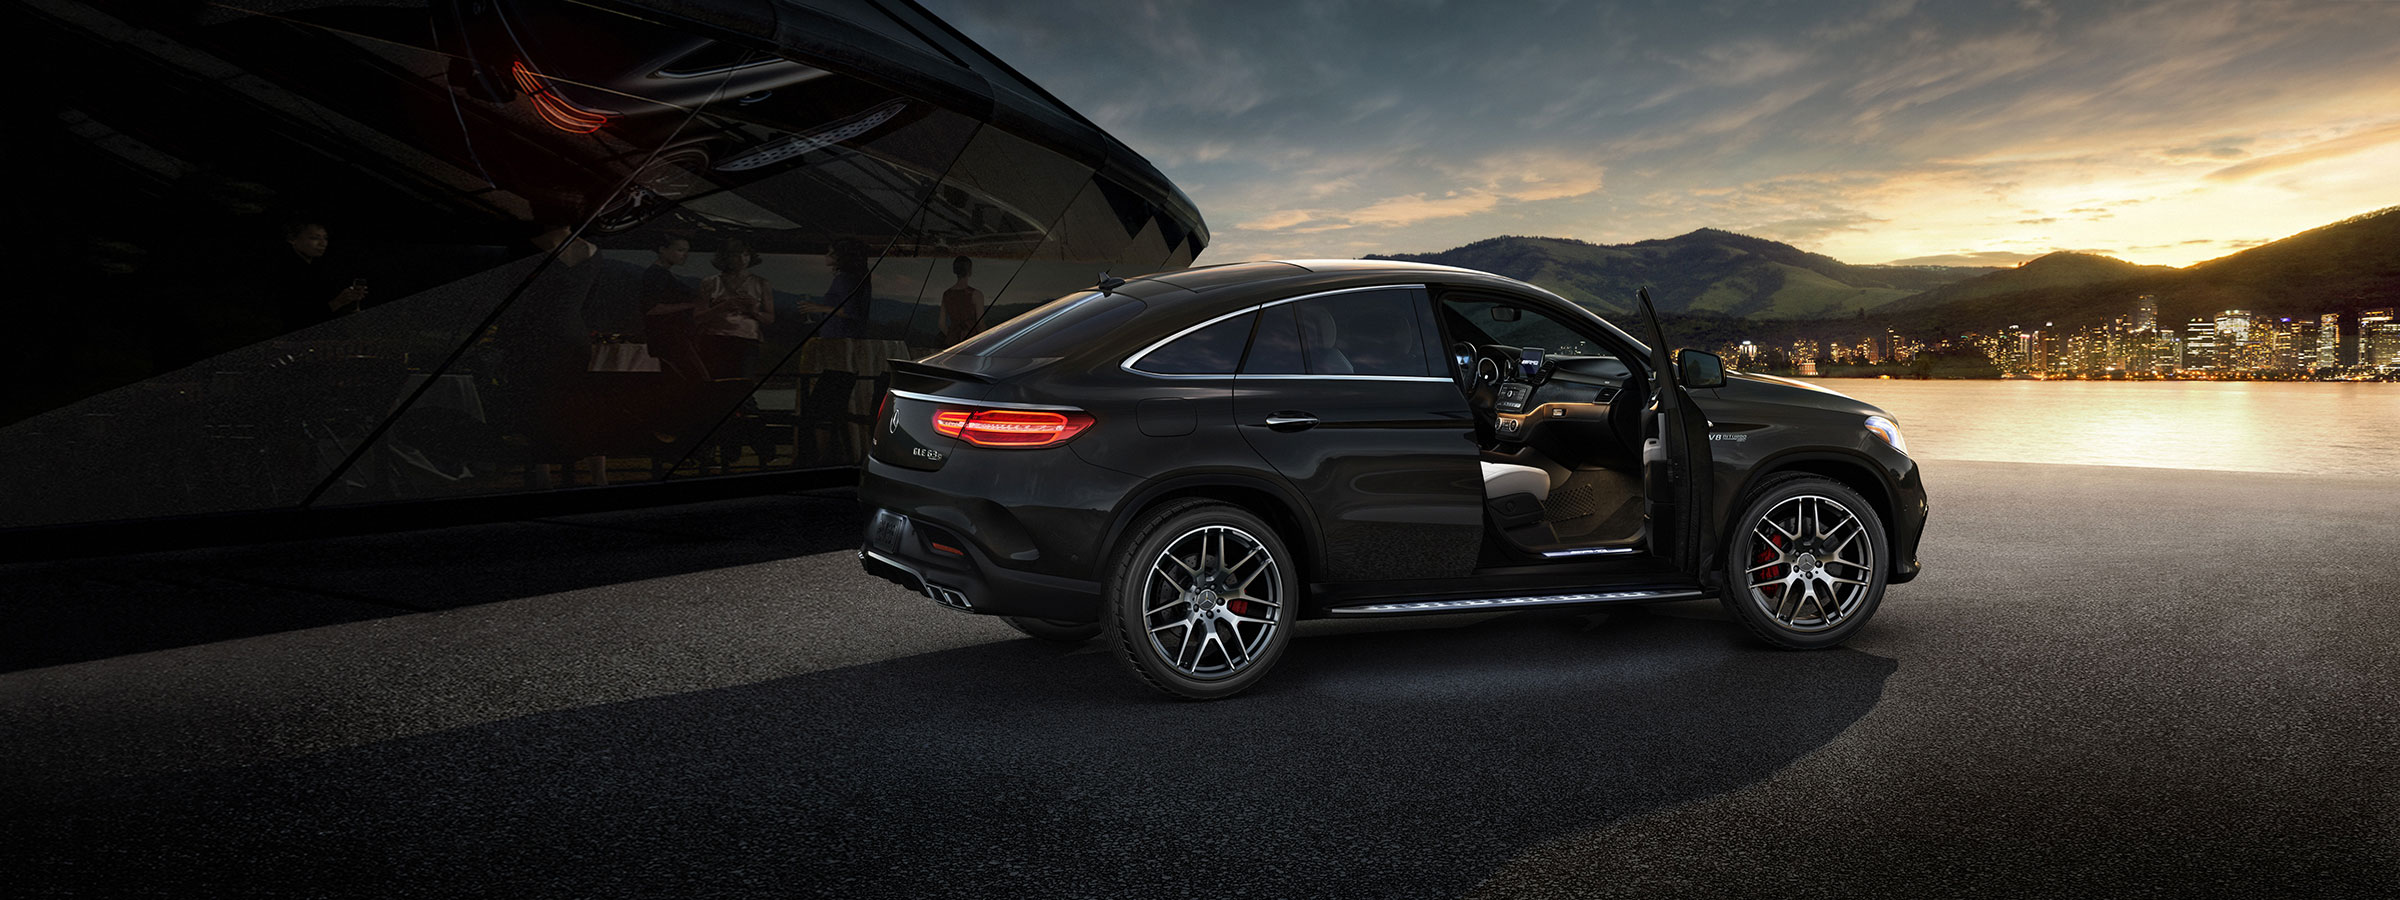 2019 Amg Gle Coupe Mercedes Benz